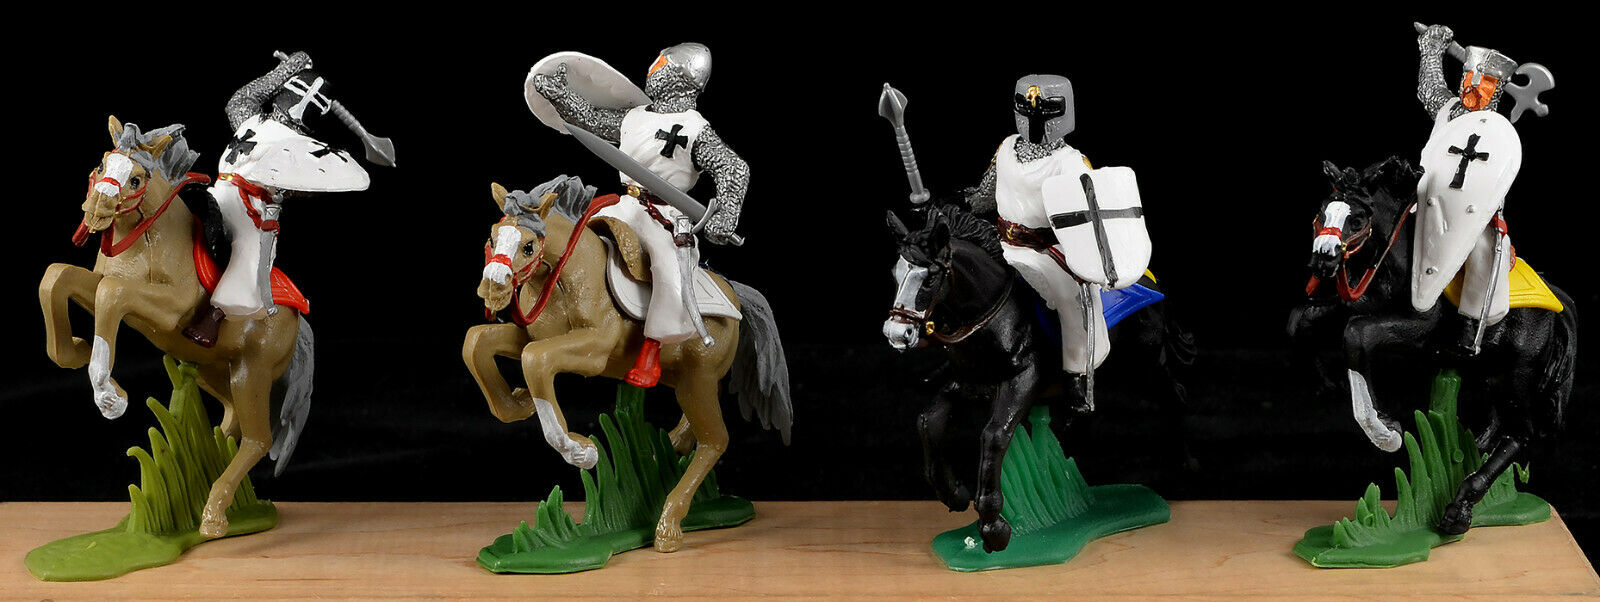 DSG Mounted Crusaders - Teutonic Knights - 54mm Painted Painted Plastic EXCLUSIVE